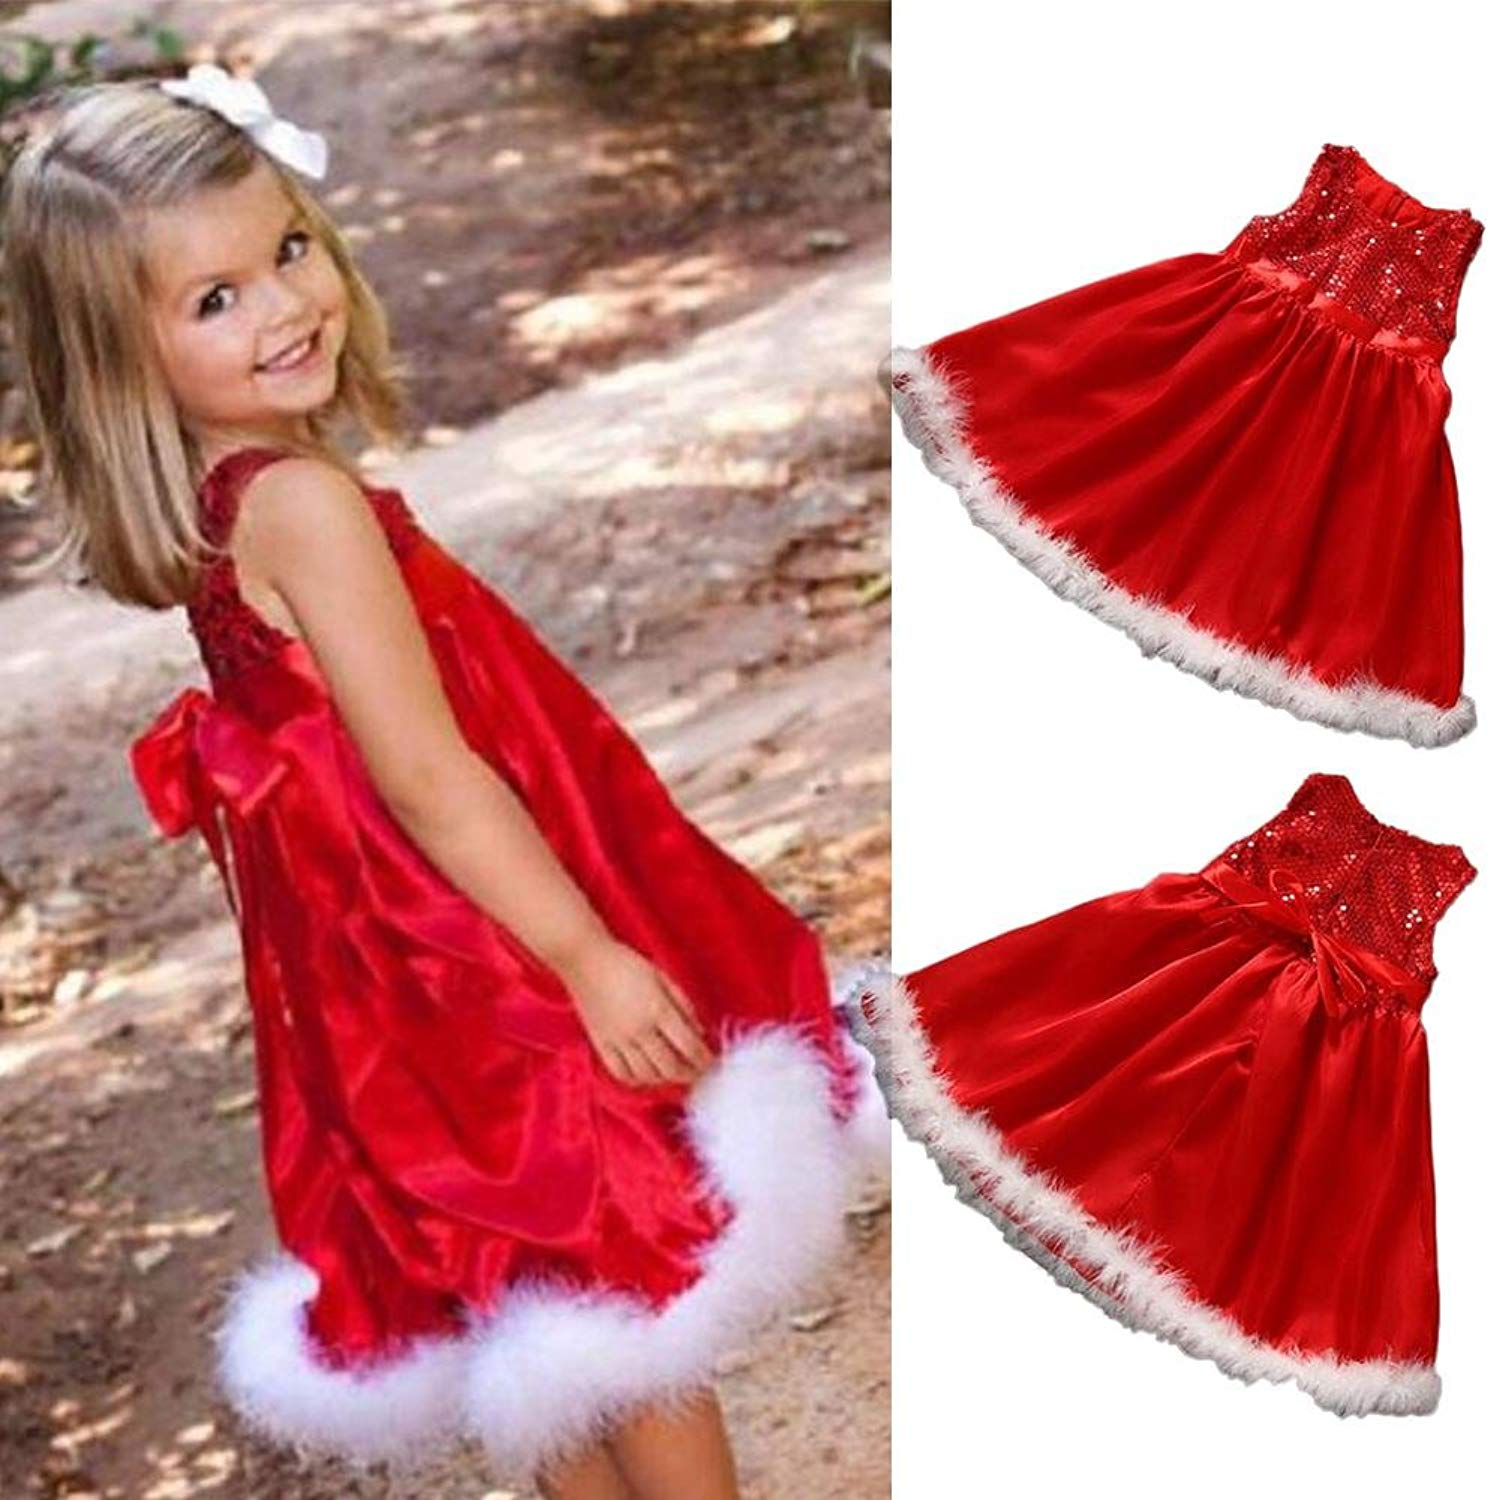 86b772b6b5d3 Get Quotations · ZHUOTOP Children Baby Girls Sequins Party Hairy Belt Cake  Formal Dress Clothes